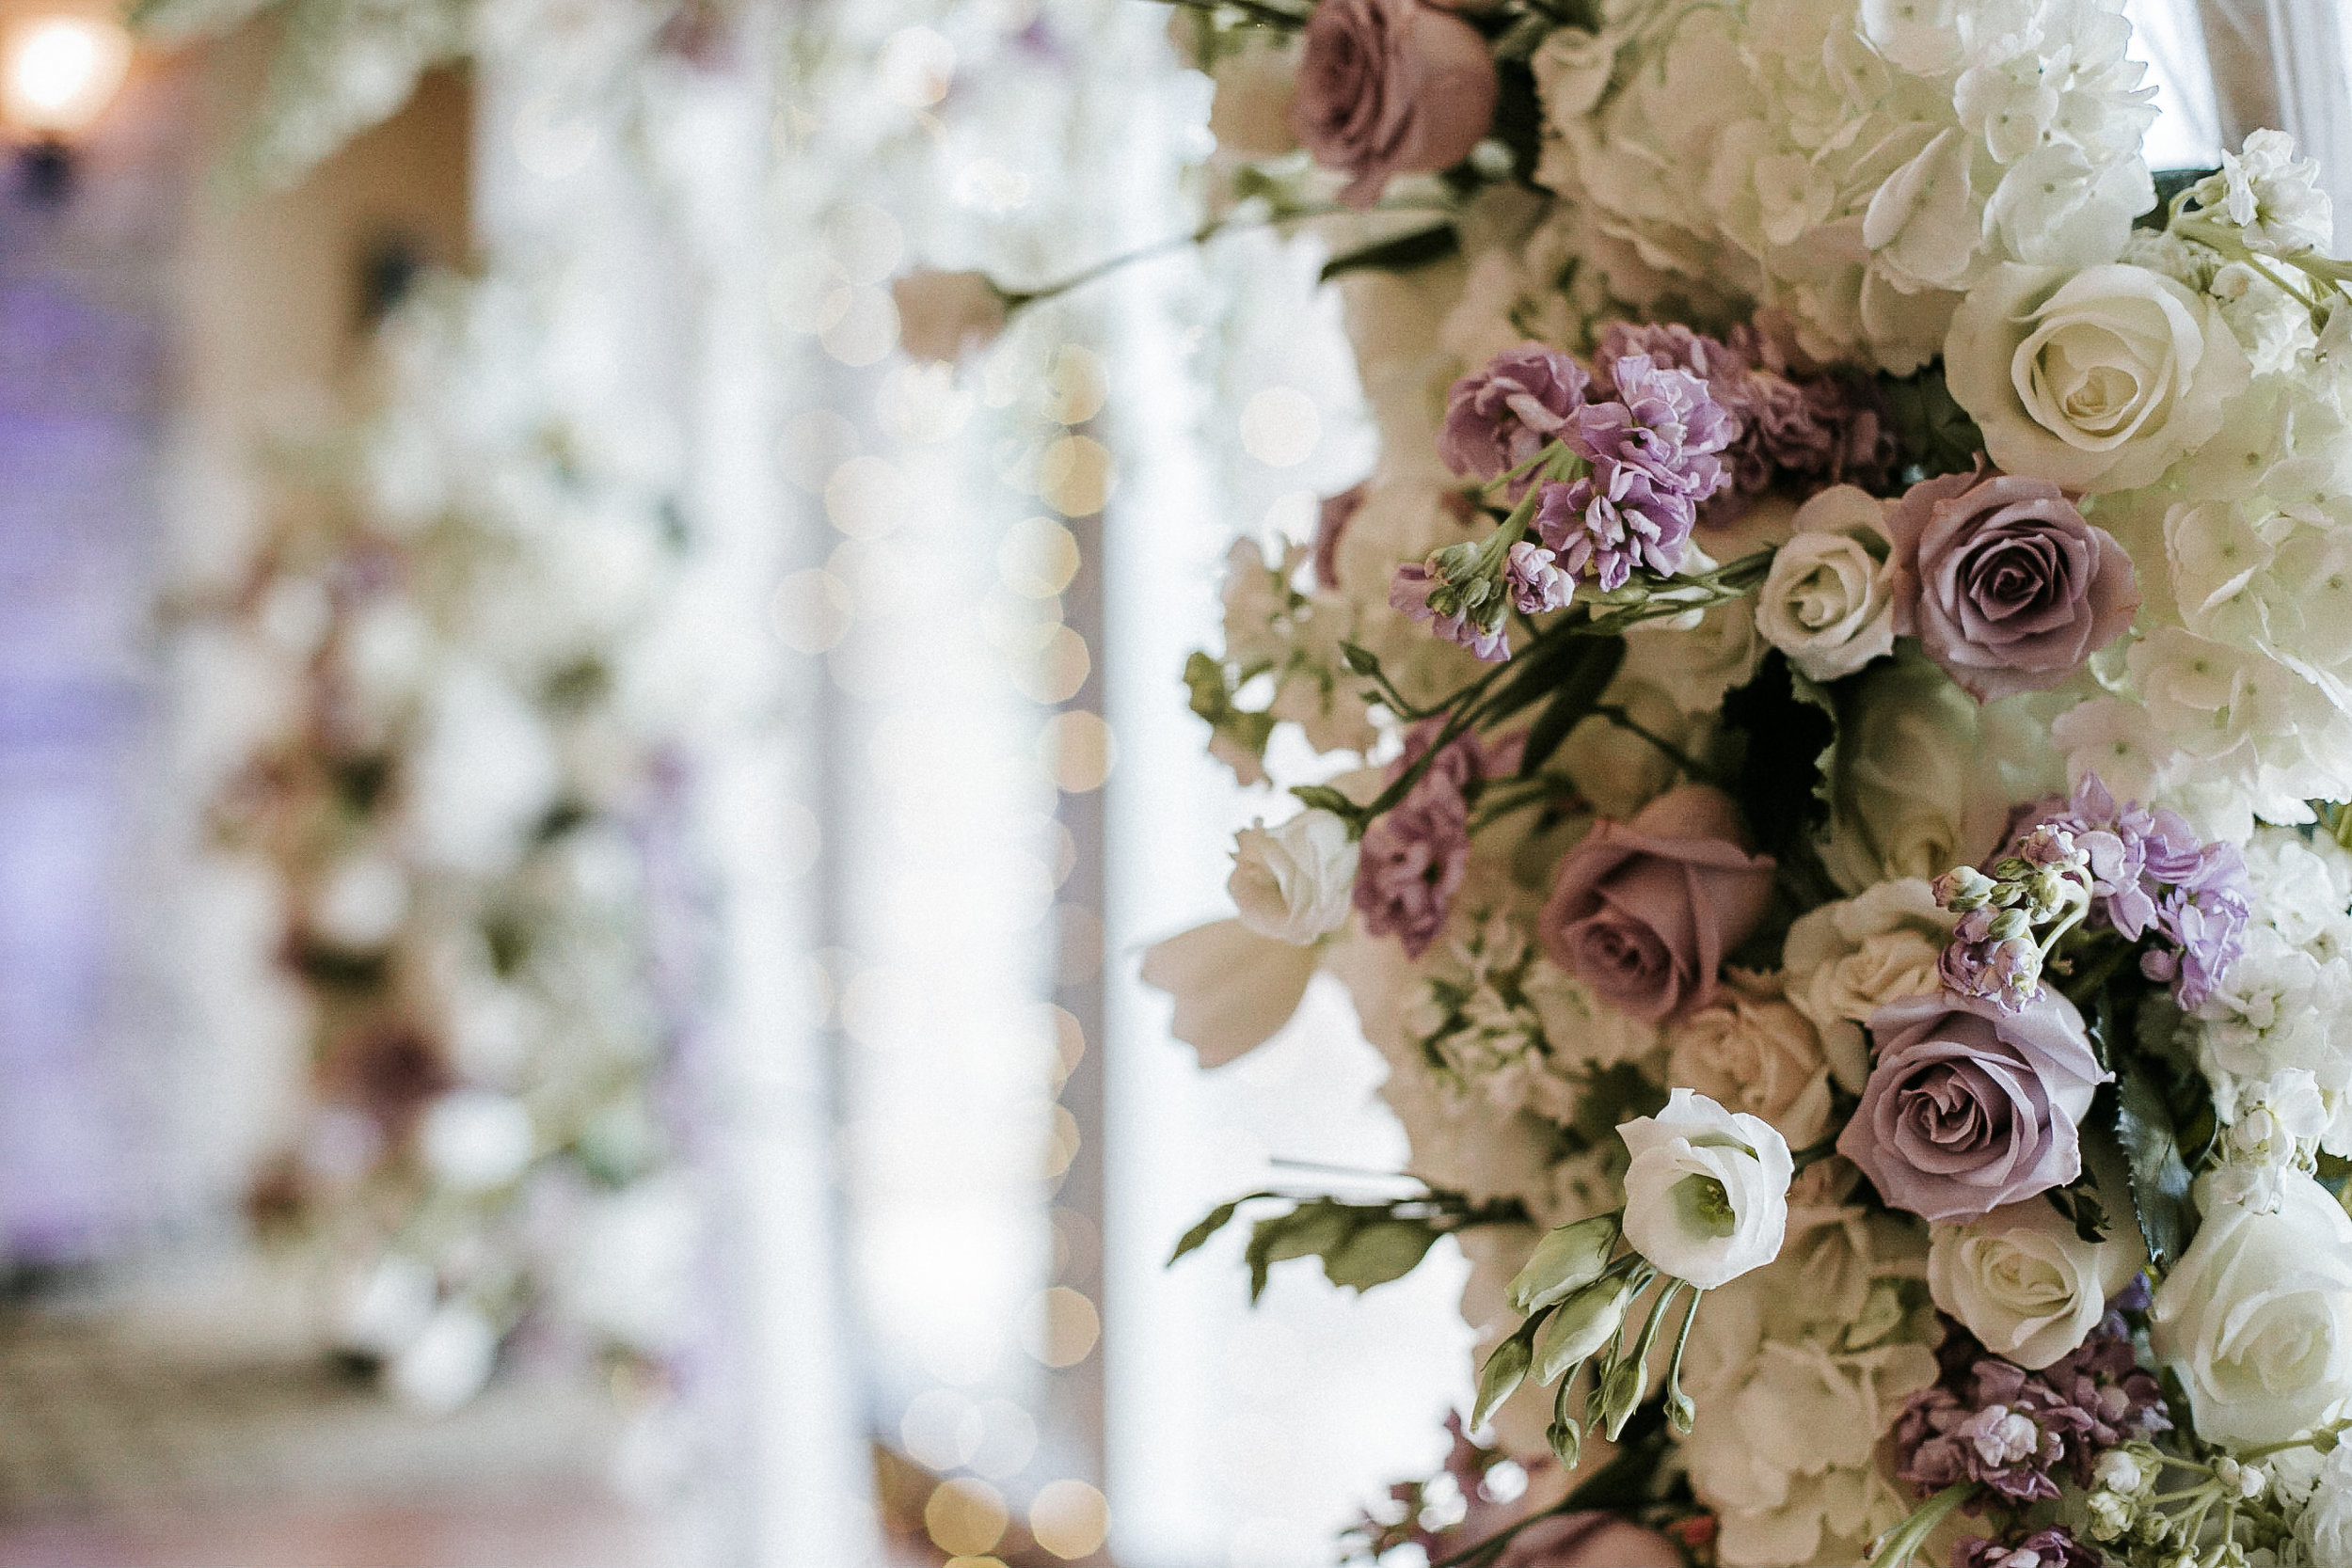 Flowers on arch at wedding